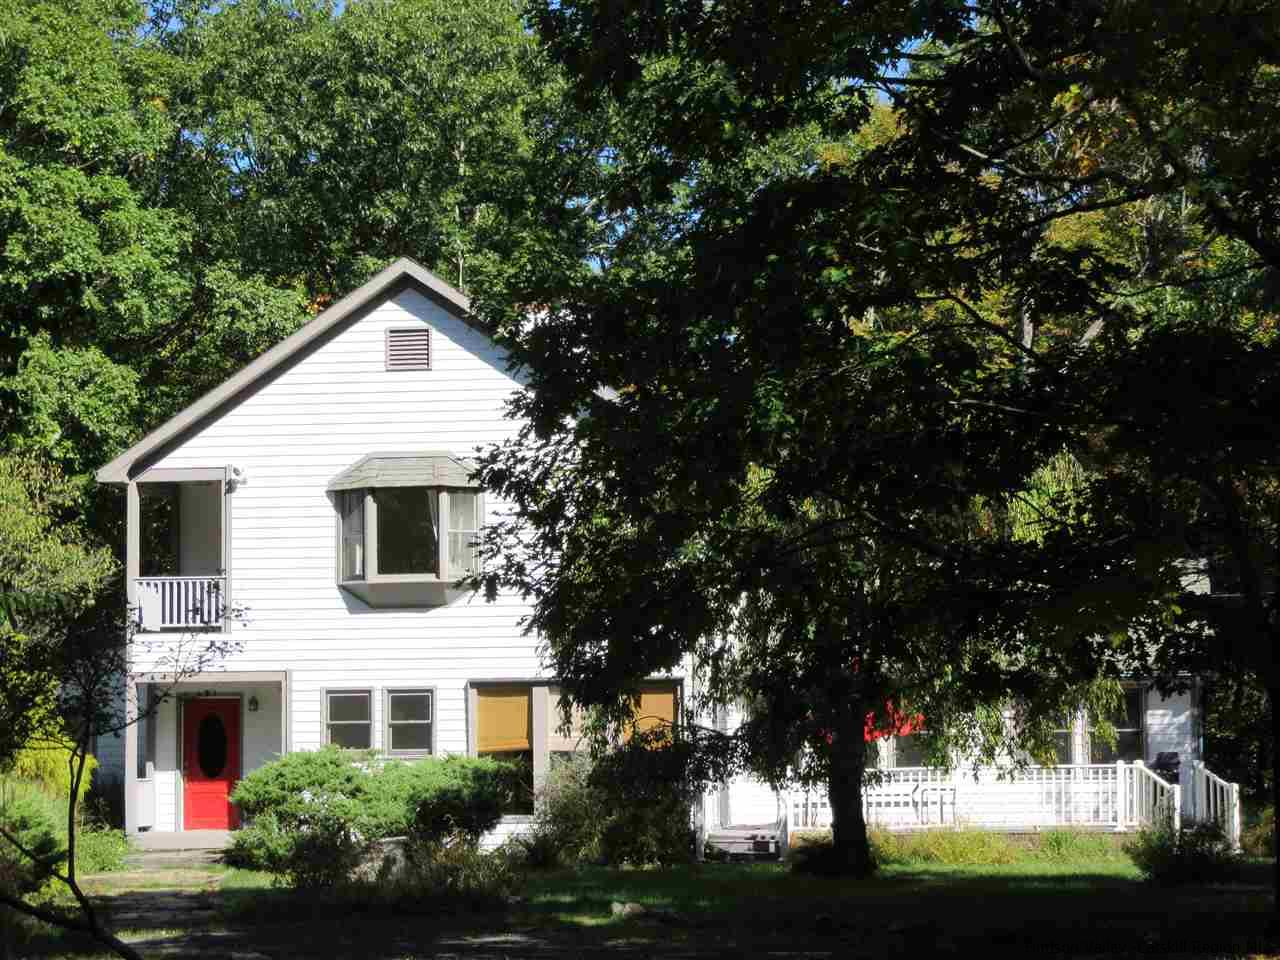 186 Stoll Rd, Saugerties, NY 12477